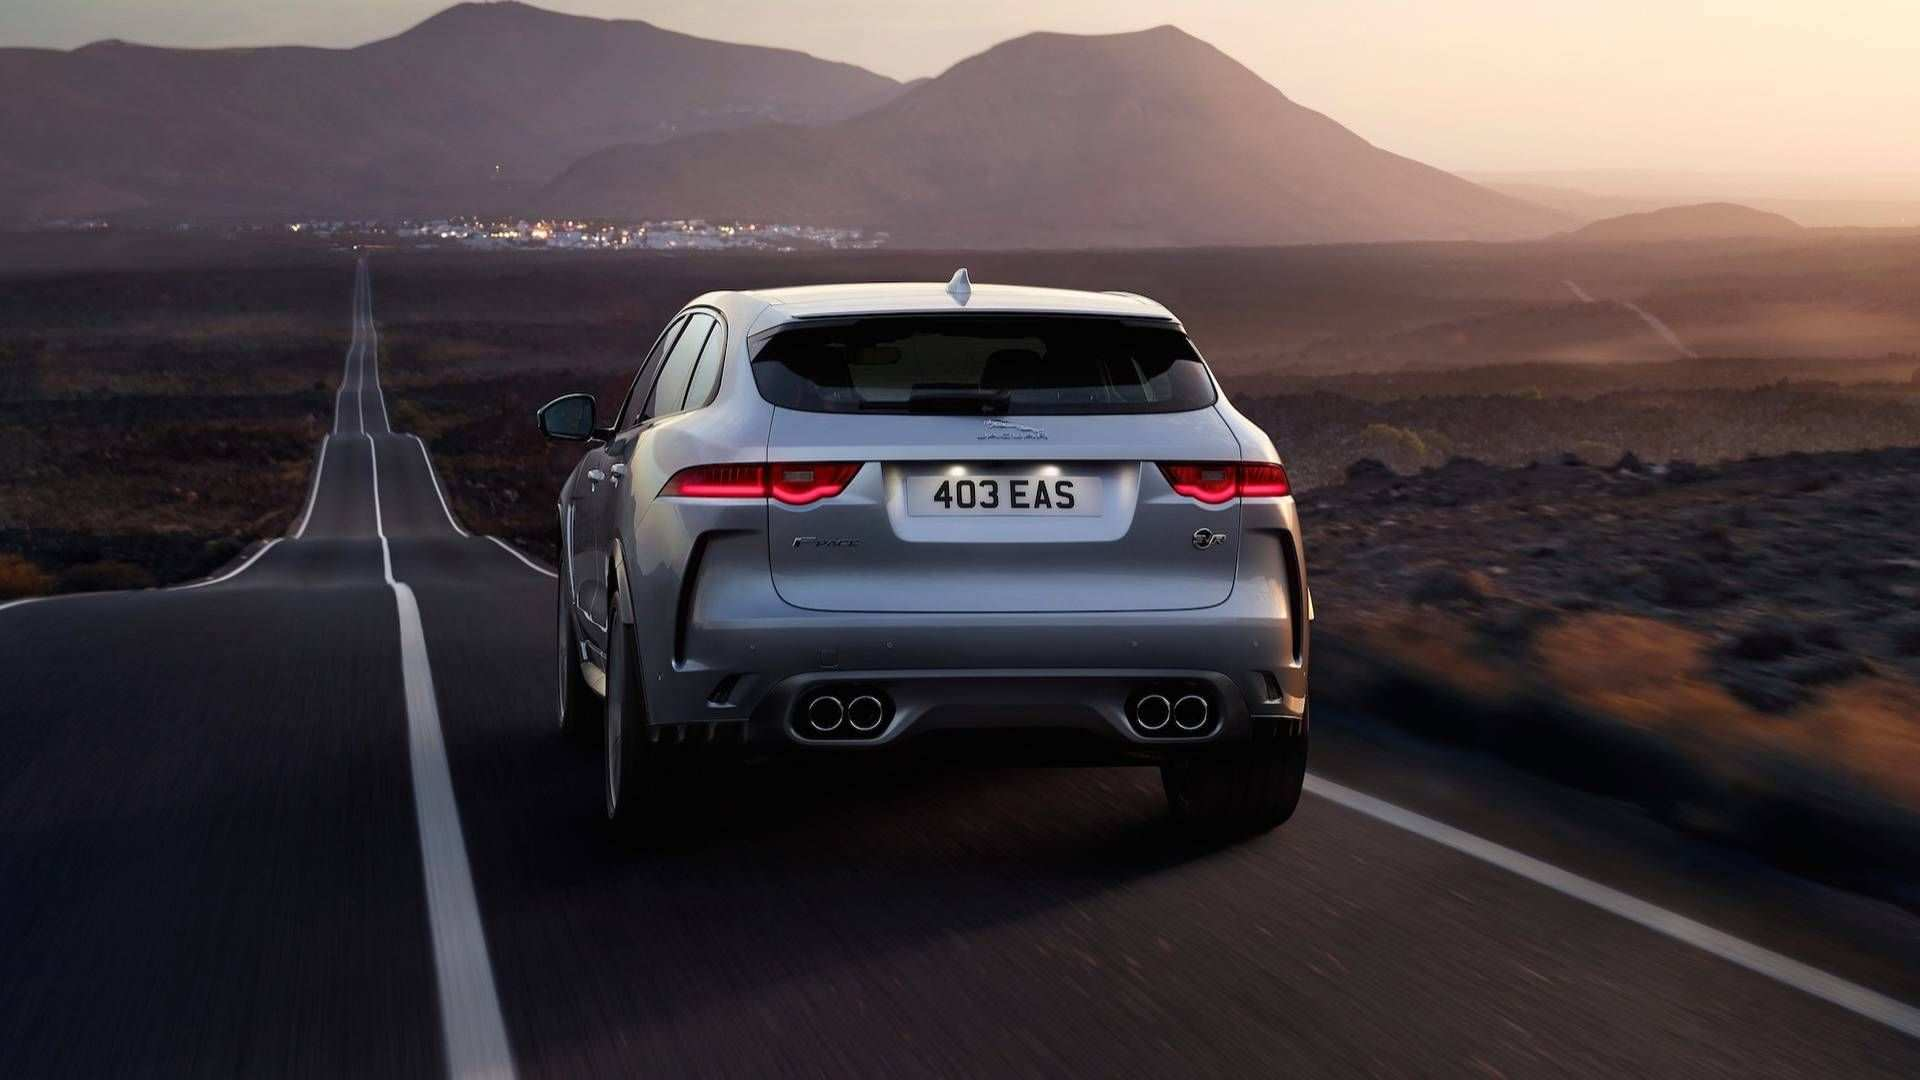 96 Great The 2019 Jaguar Vehicles Concept Redesign And Review Specs and Review for The 2019 Jaguar Vehicles Concept Redesign And Review